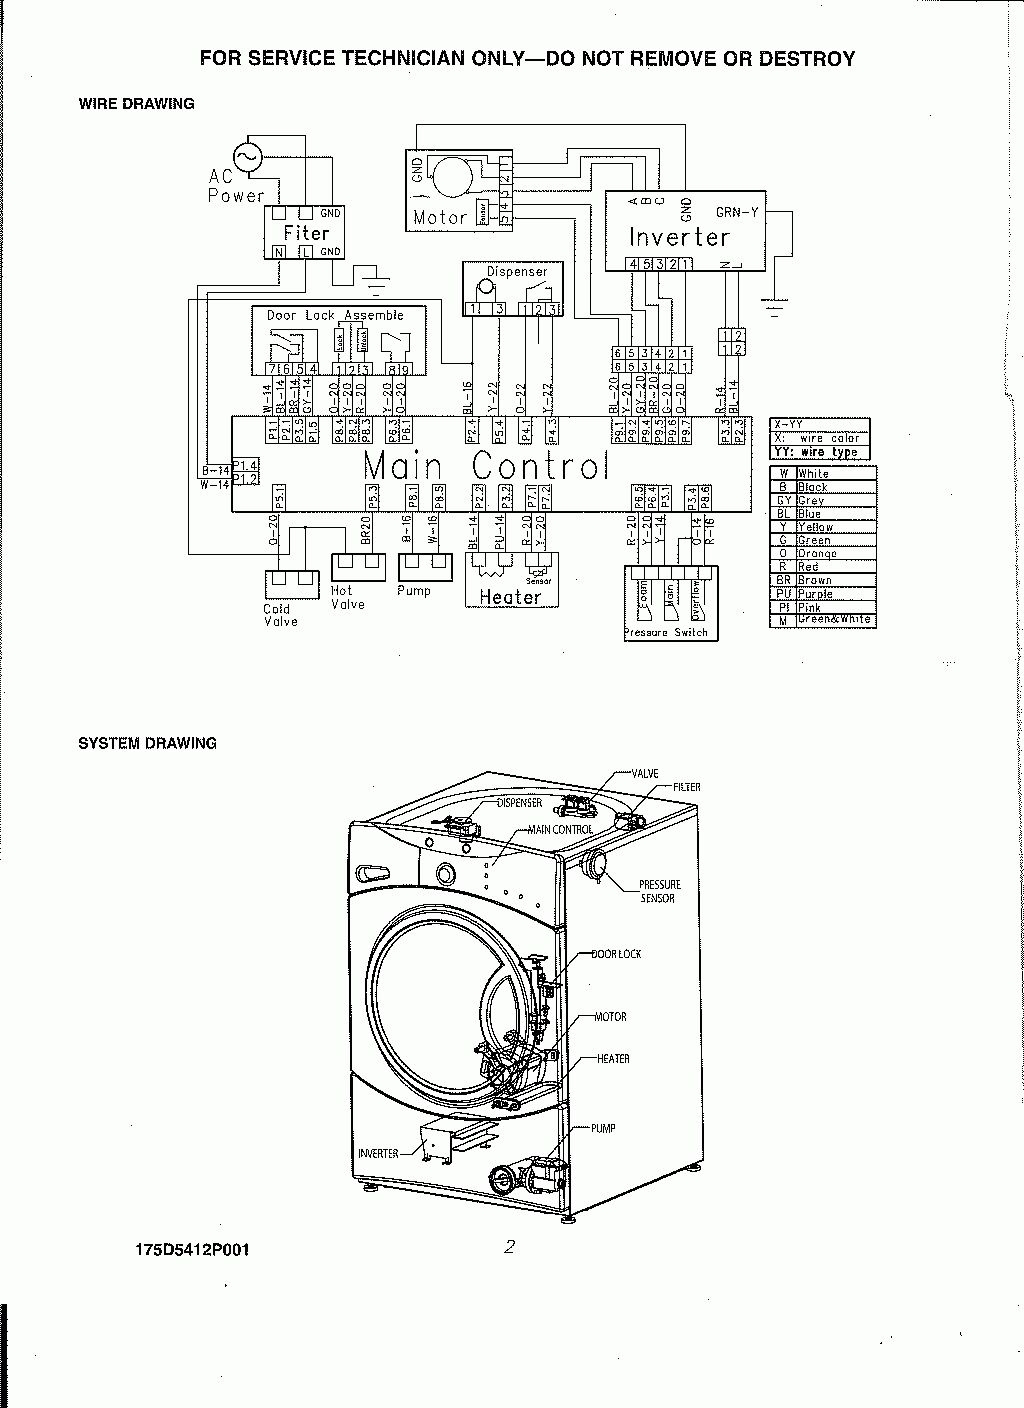 Diagram Washing Machine Parts Diagram Media Full Version